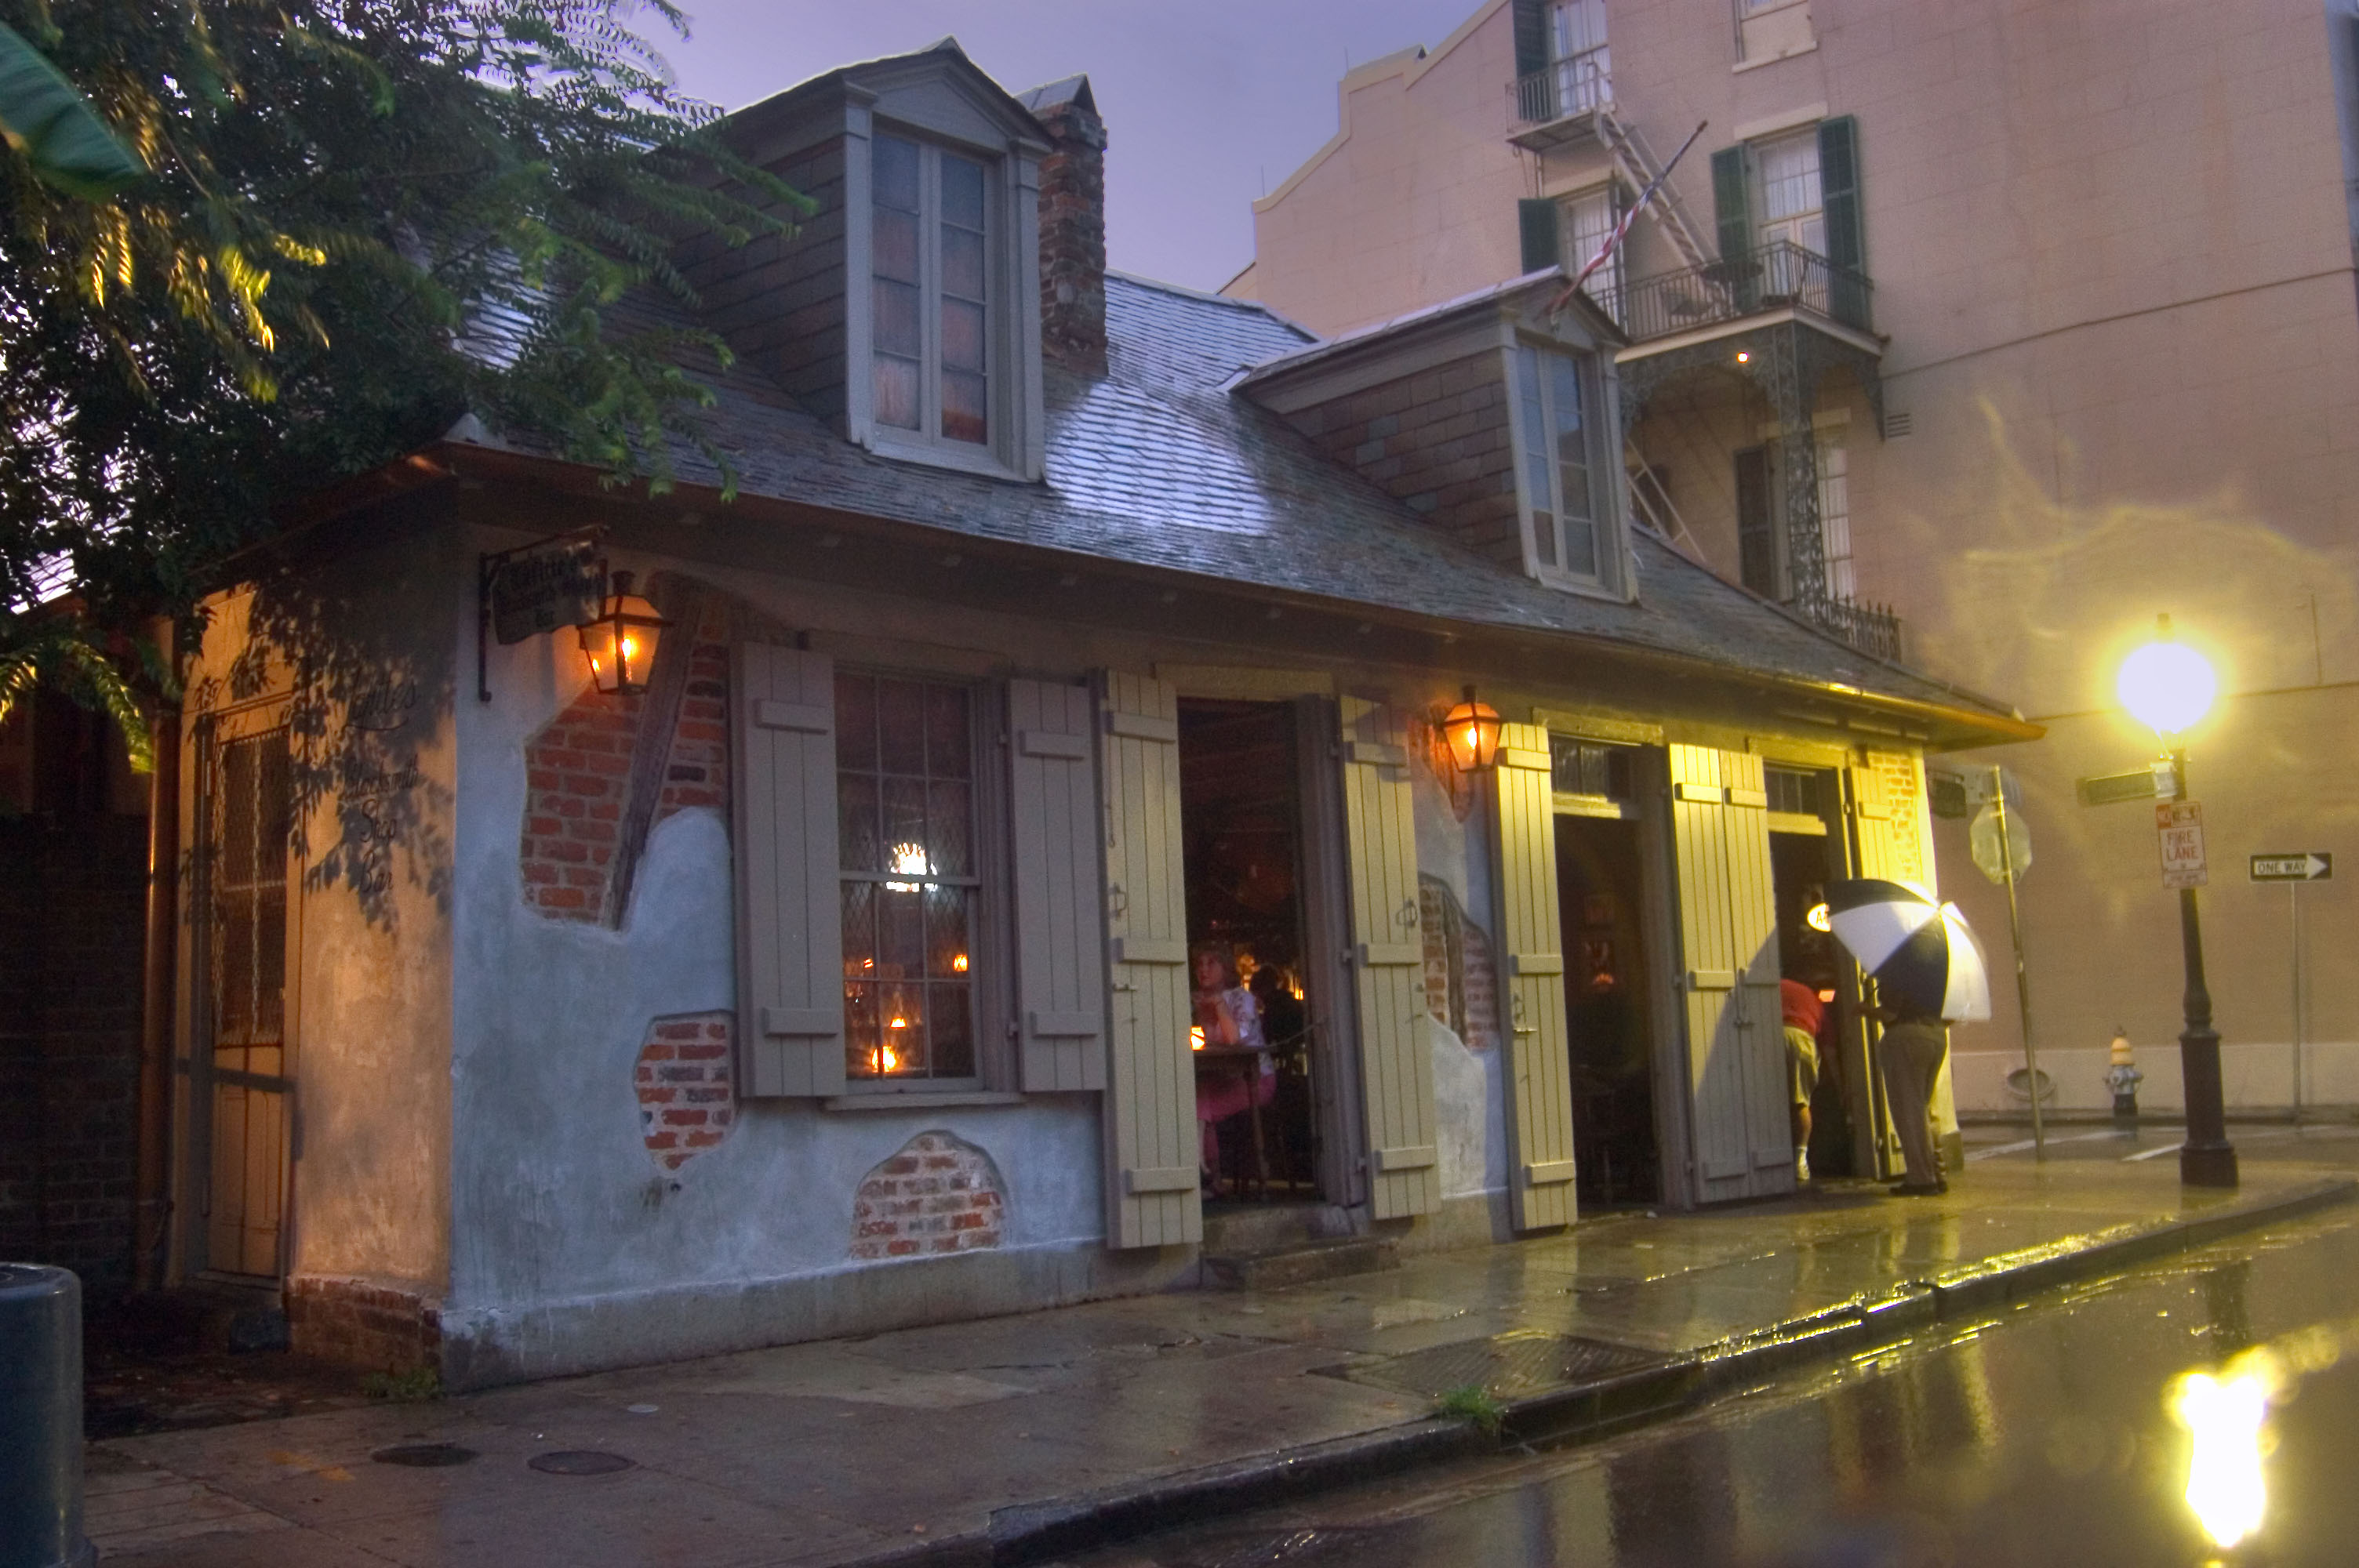 Blacksmith's Shop The Borders and the Southwest, Lafitte's Blacksmith Shop, New Orleans, LA. Oldest bar in the US ...